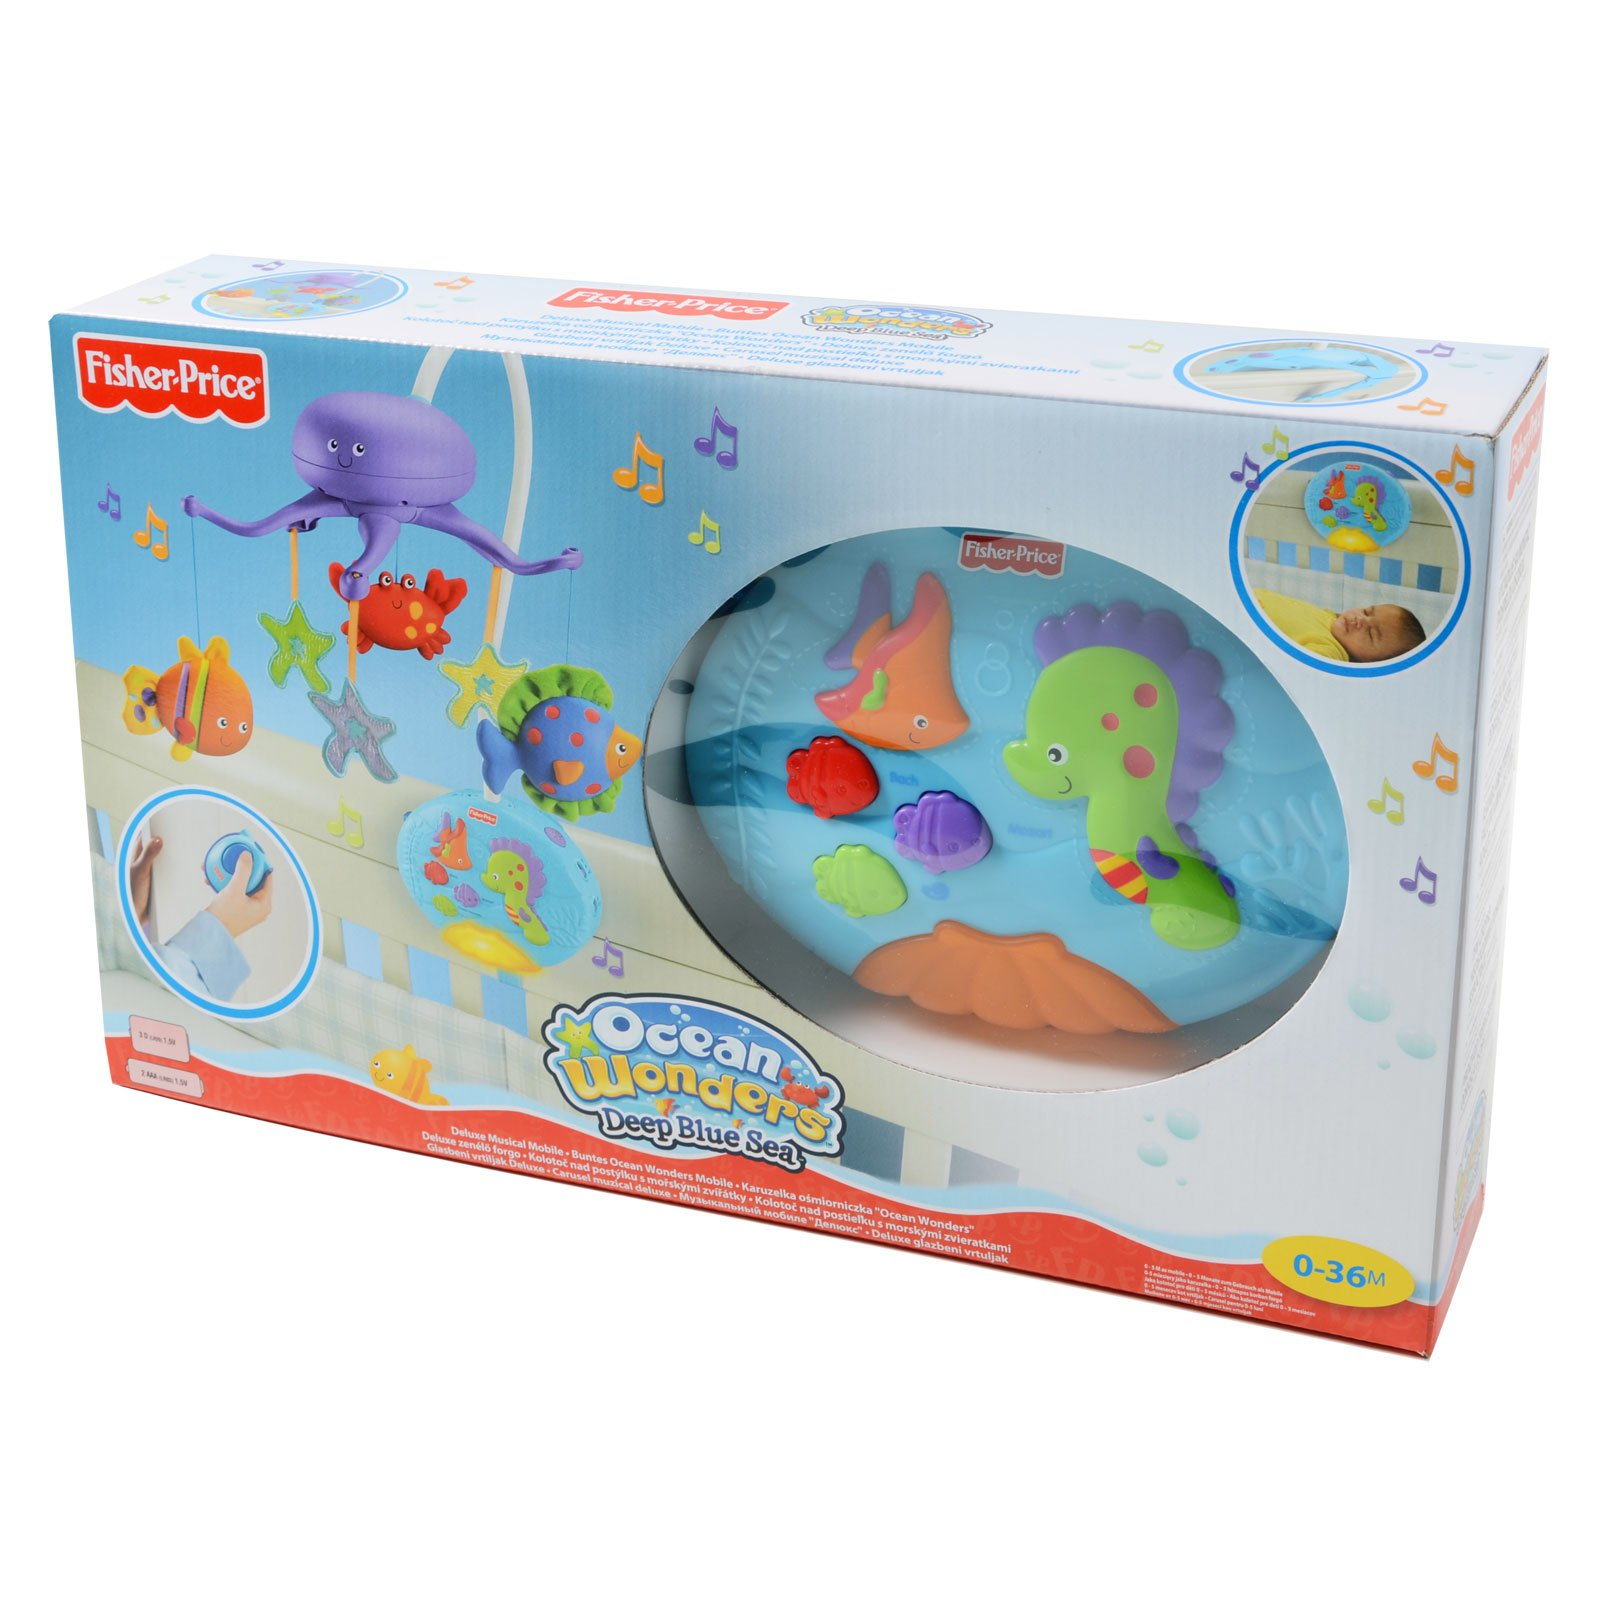 Fisher-Price Ocean Wonders Deep Blue Sea Mobile Fisher-Price Crib Mobiles Remote Control by Fisher-Price (Image #5)